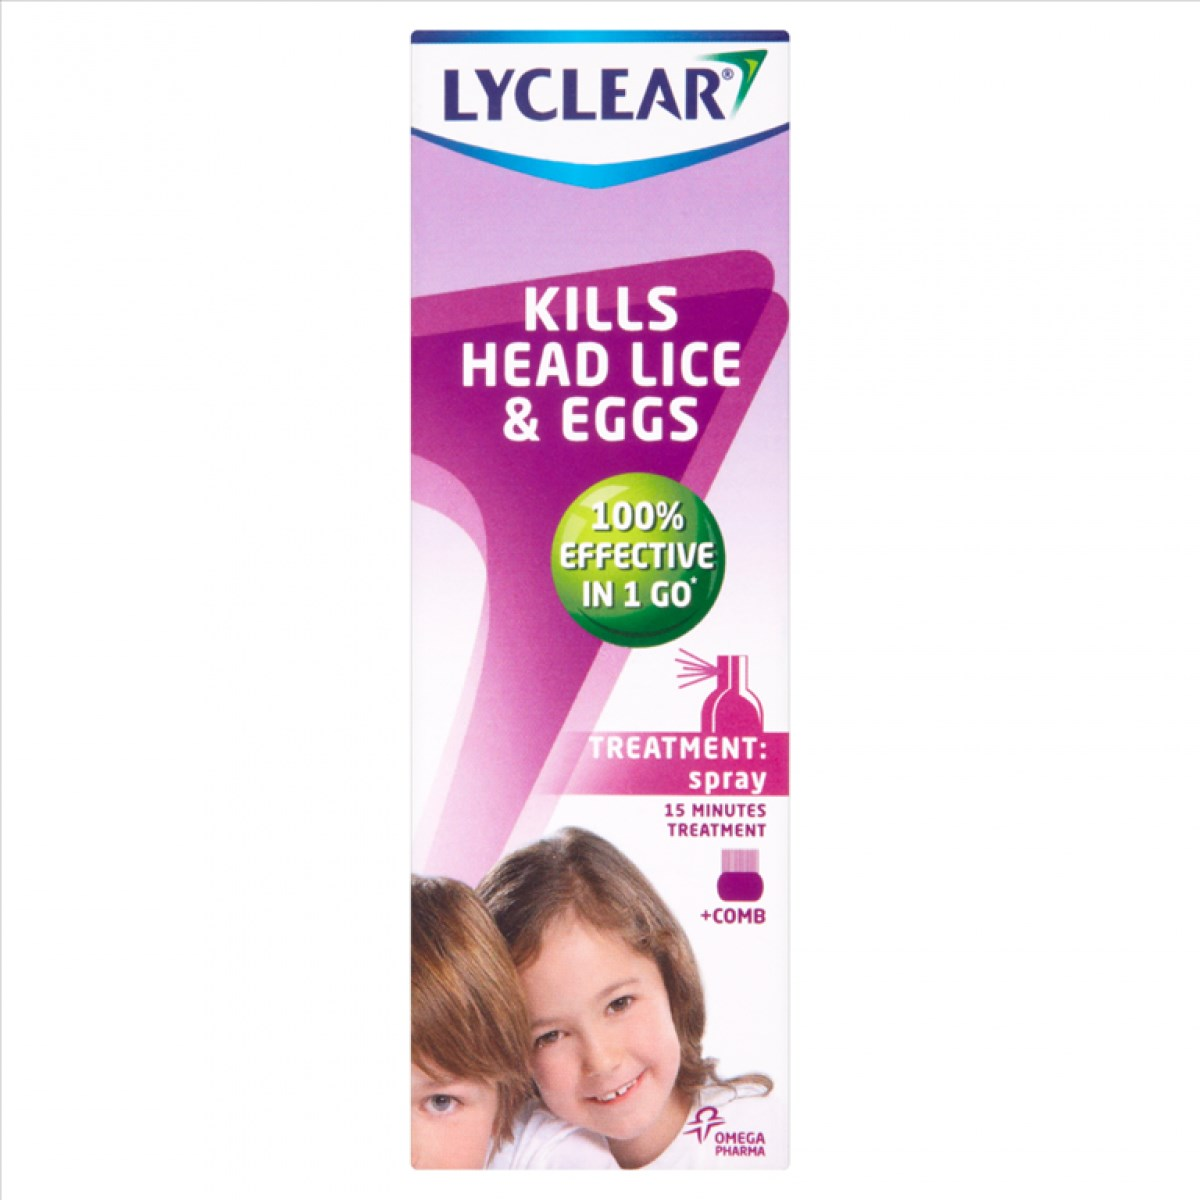 Lyclear Kills Head Lice and Eggs - Treatment Spray + Comb